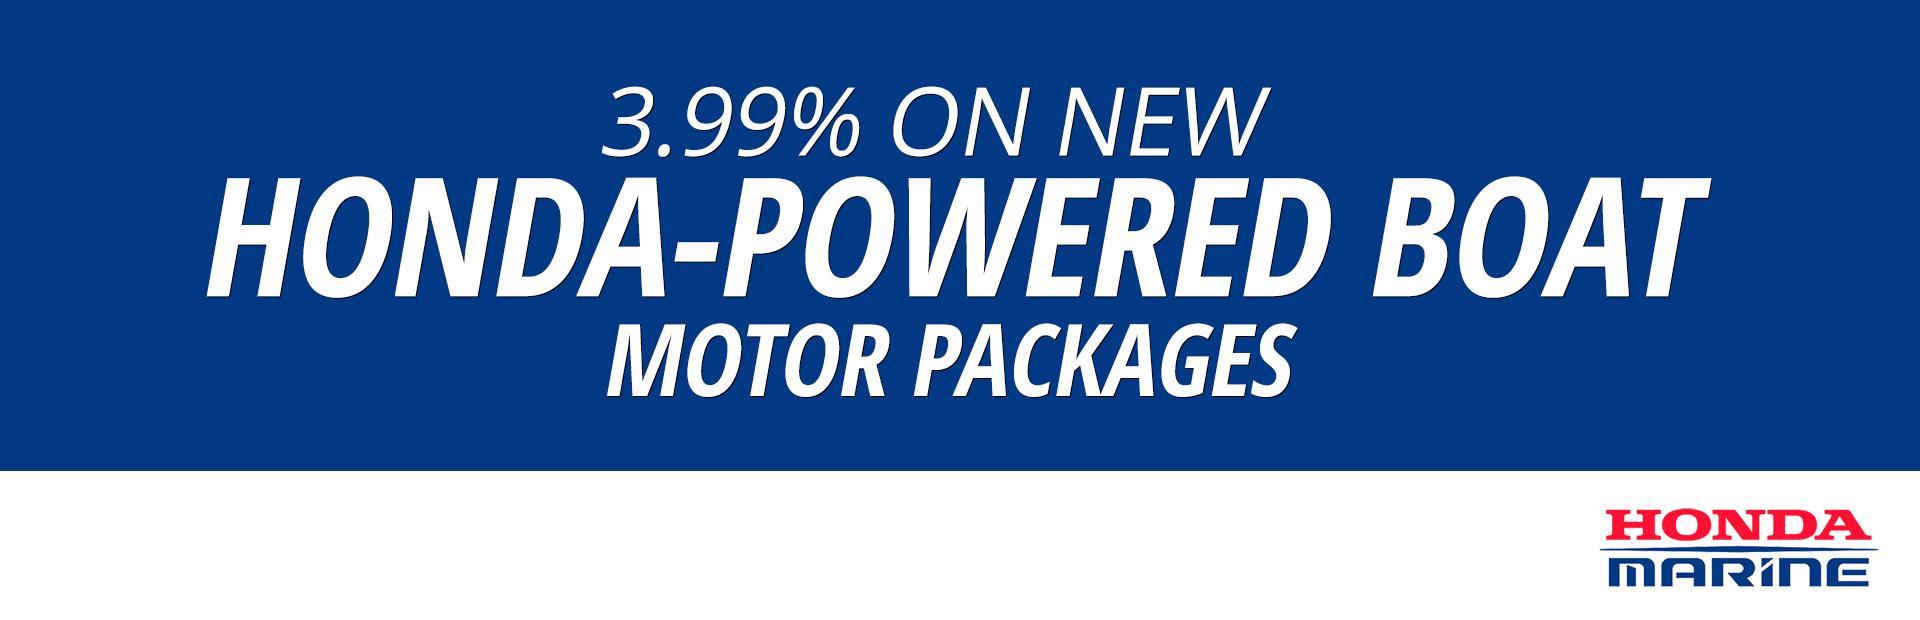 3.99% on New Honda-Powered Boat/Motor Packages